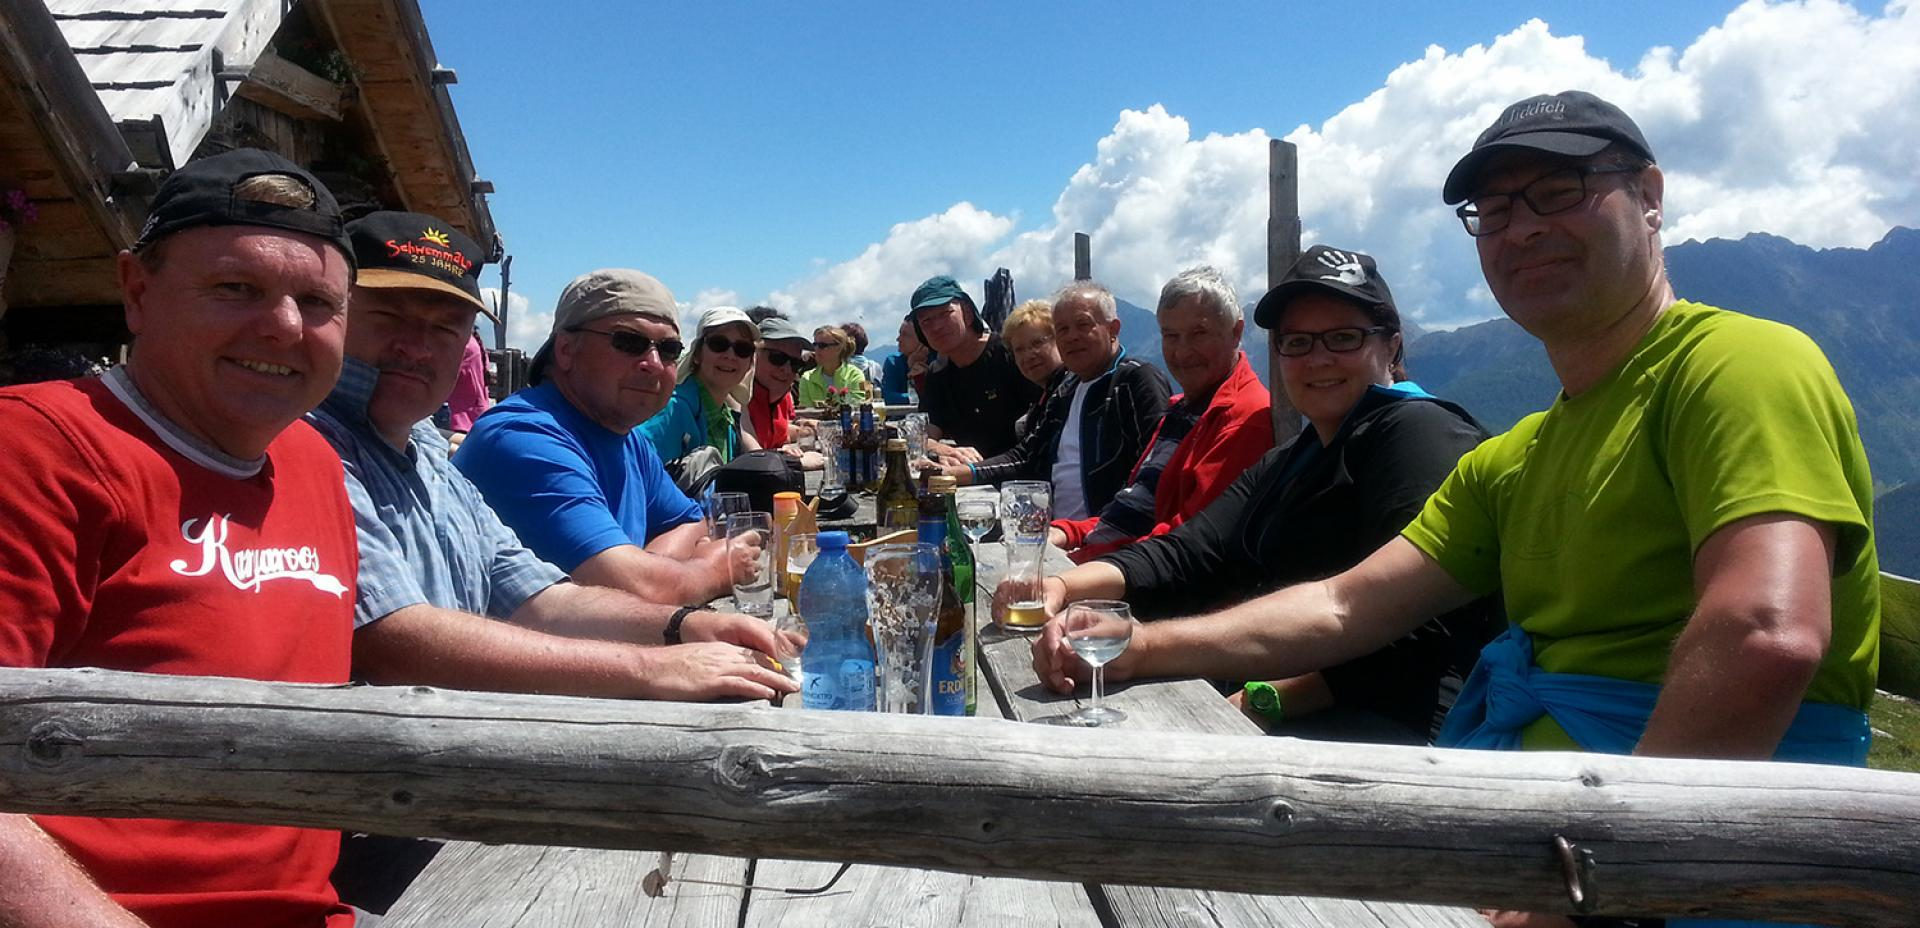 Guest hike with refreshments at a mountain hut